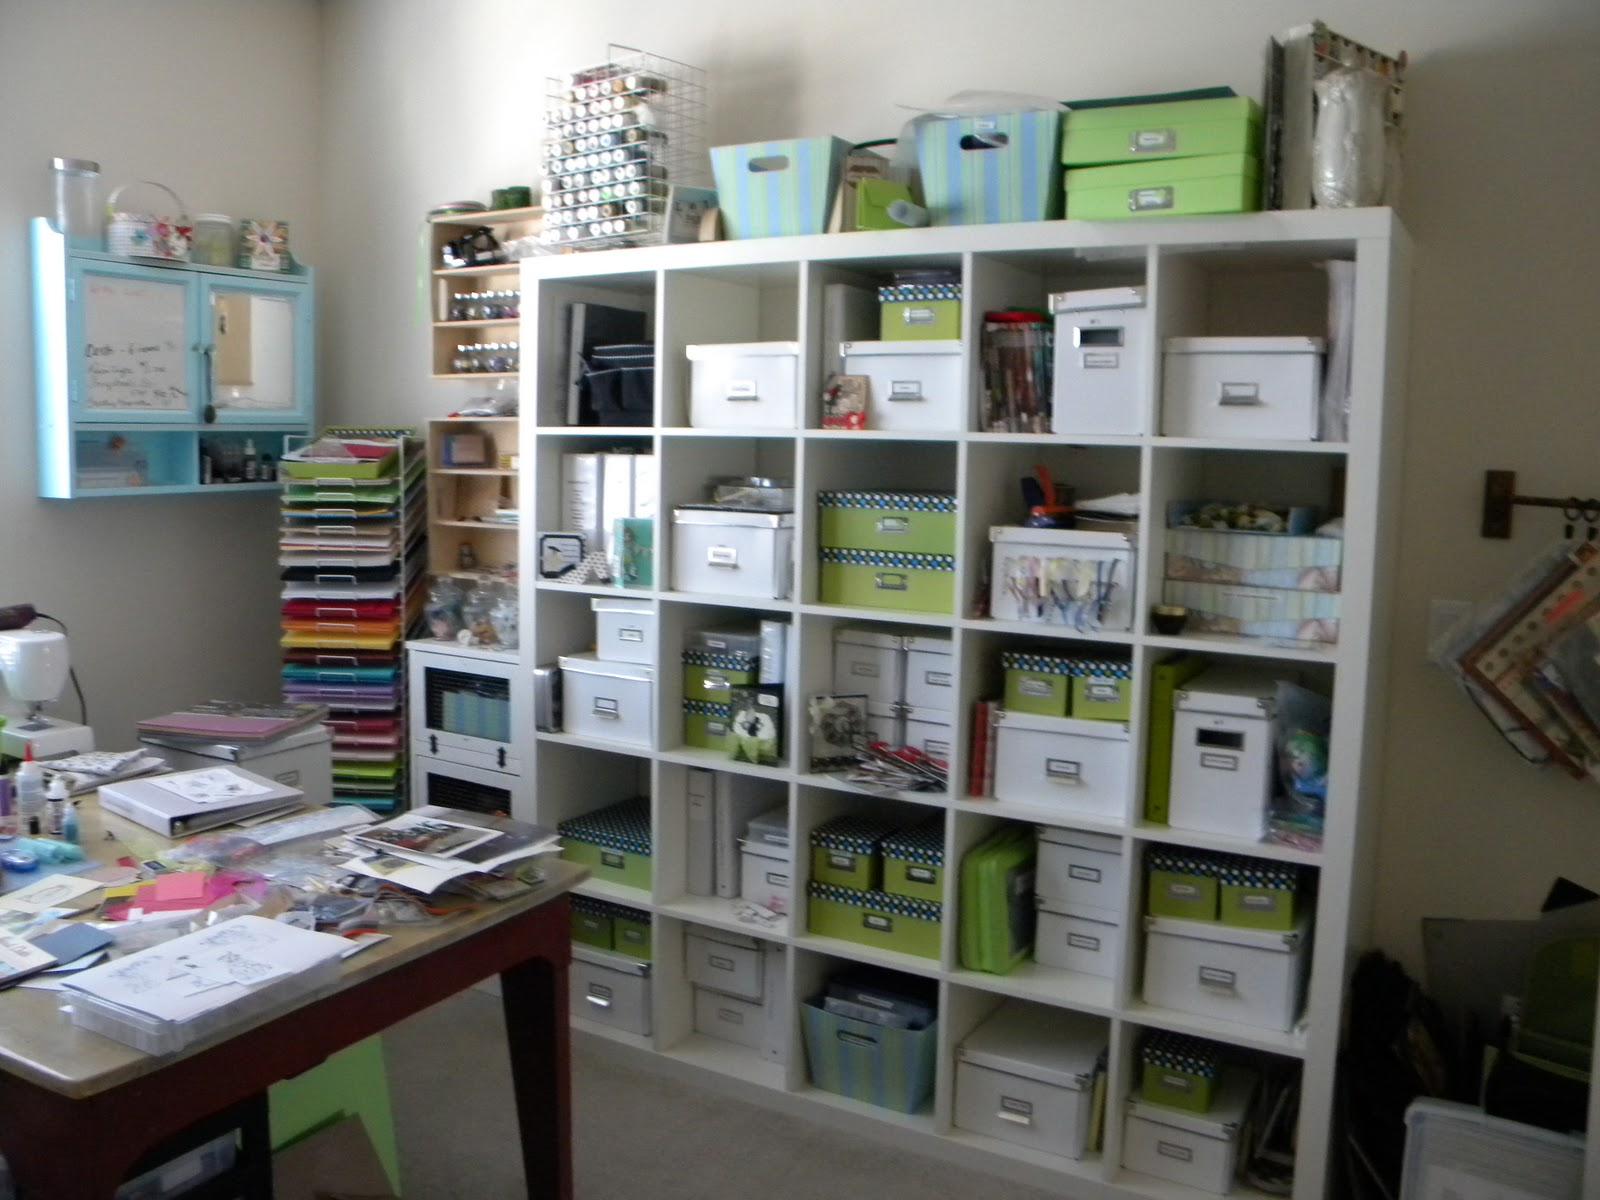 Scrap 39 n surprise new year 39 s resolution - Scrapbooking storage ideas for small spaces plan ...